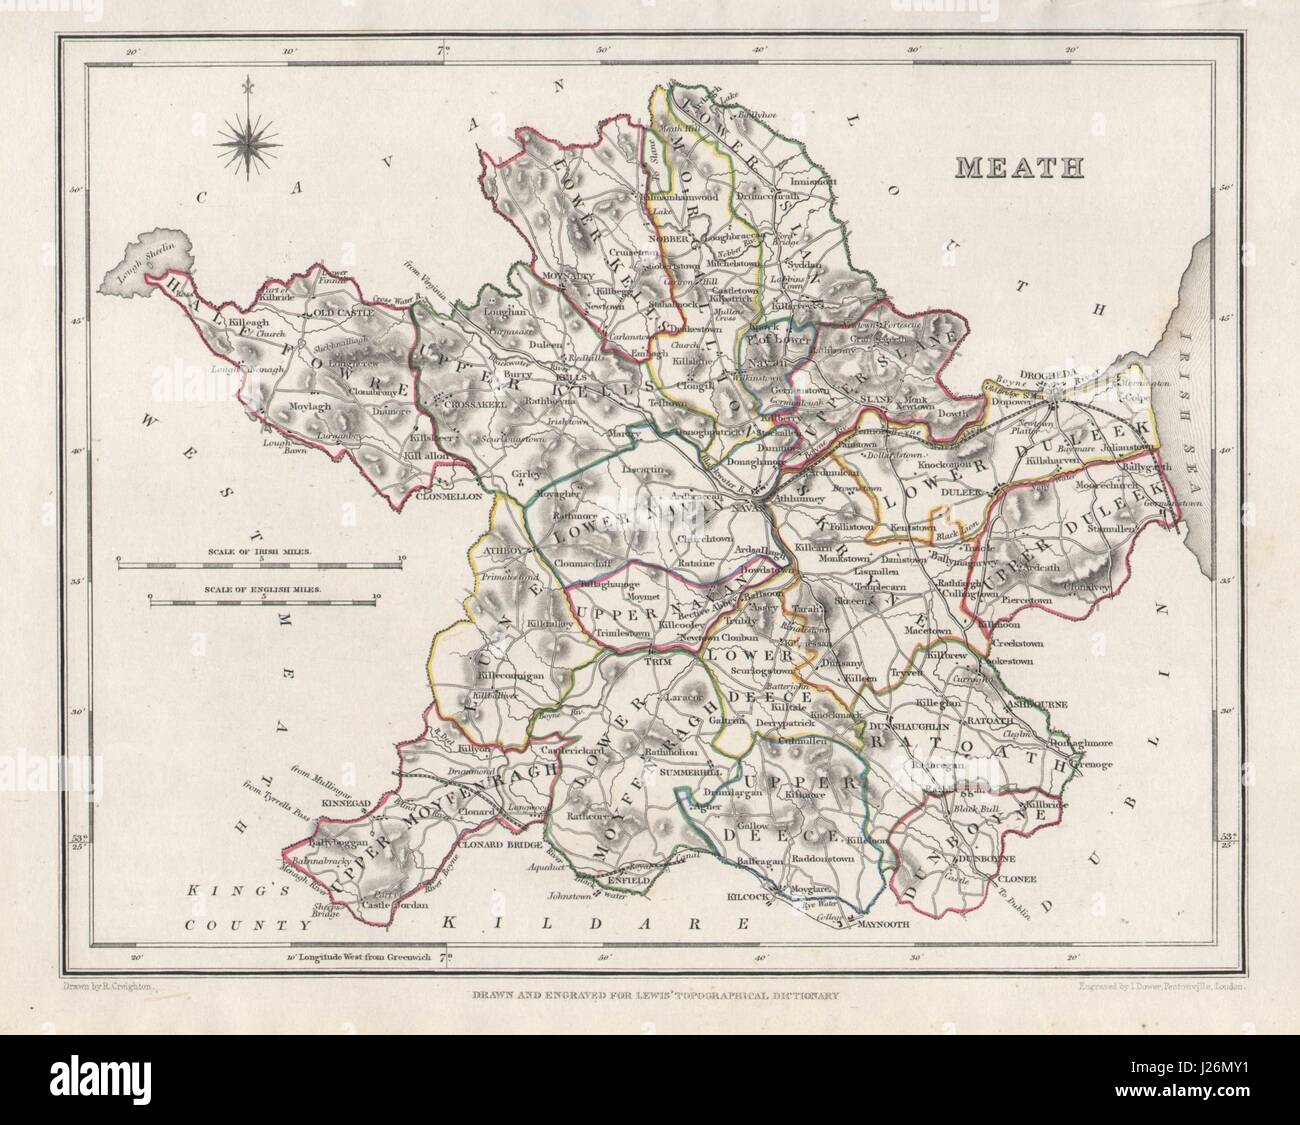 Map Of Ireland 26 Counties.County Meath Antique Map For Lewis By Creighton Dower Ireland